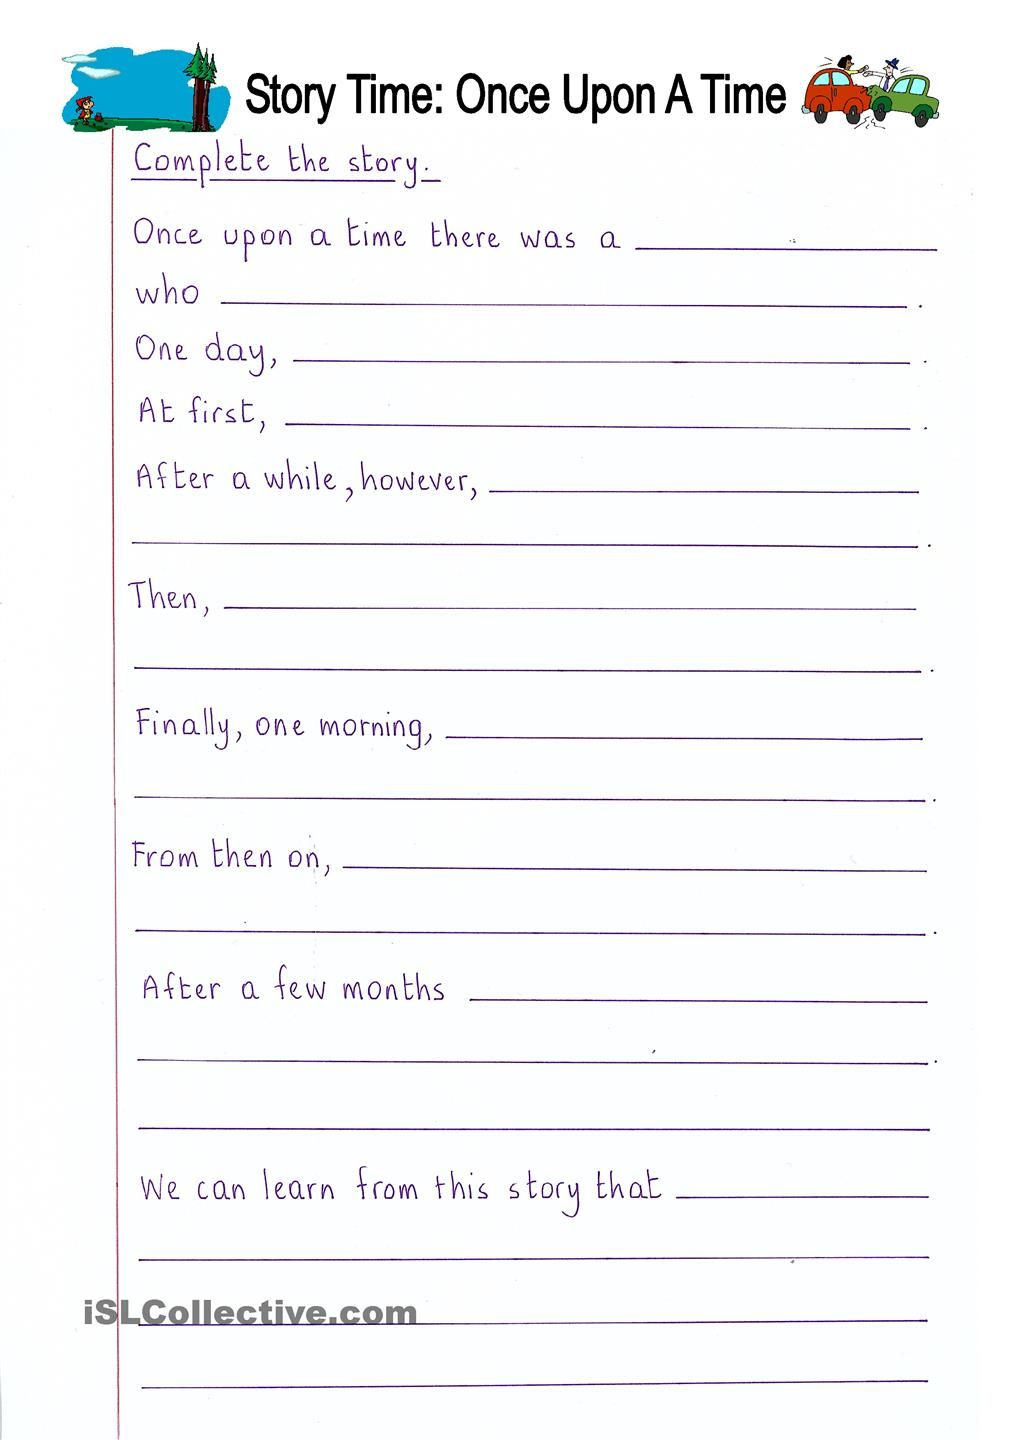 medium resolution of Read and Complete - Once Upon a Time (story writing)   Writing worksheets